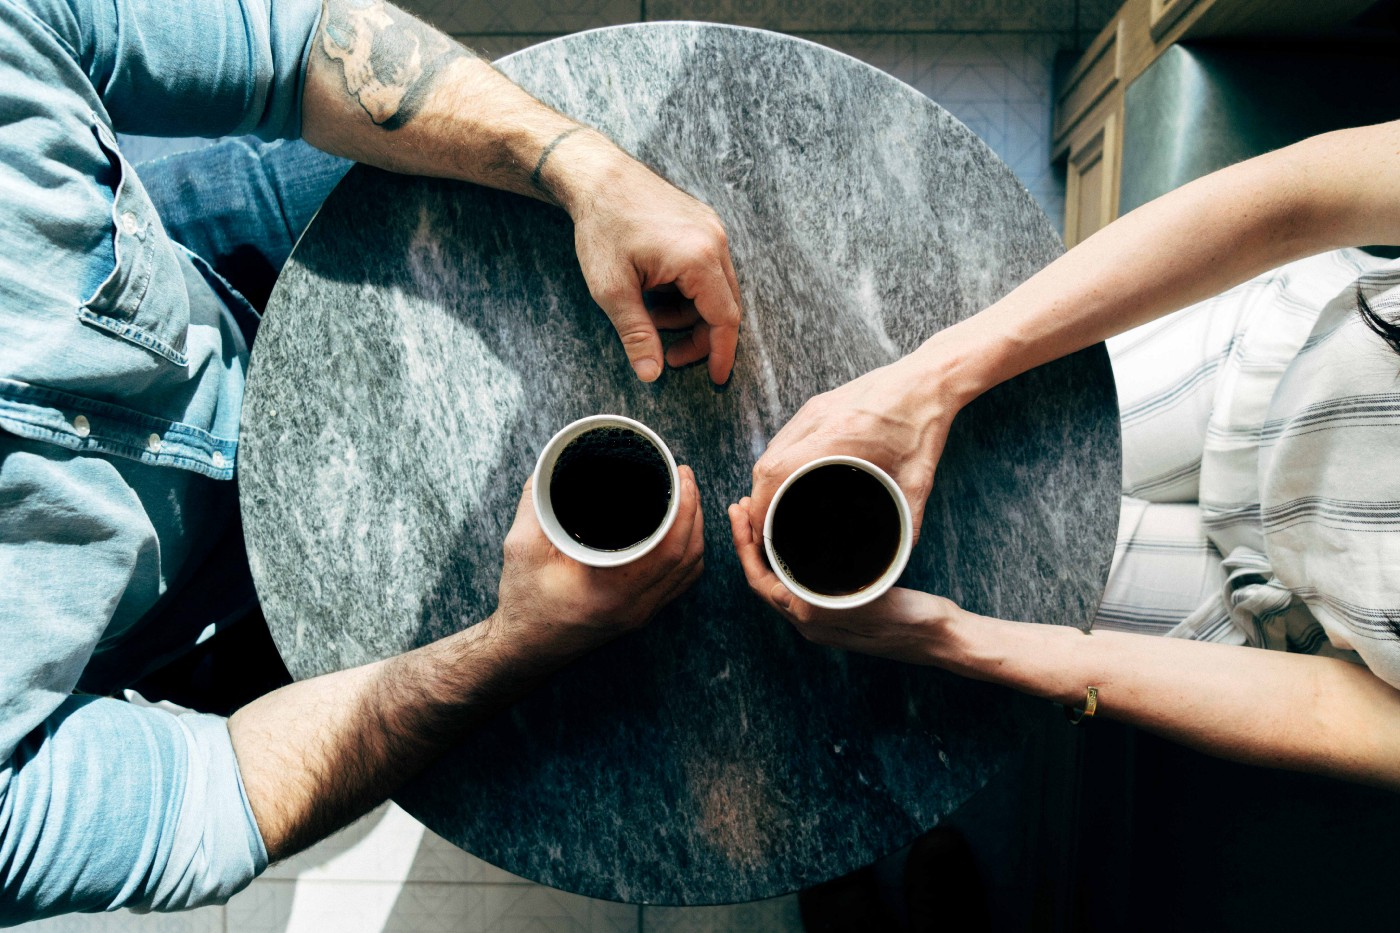 Two people each with a cup of coffee in their hand sitting at a round table.